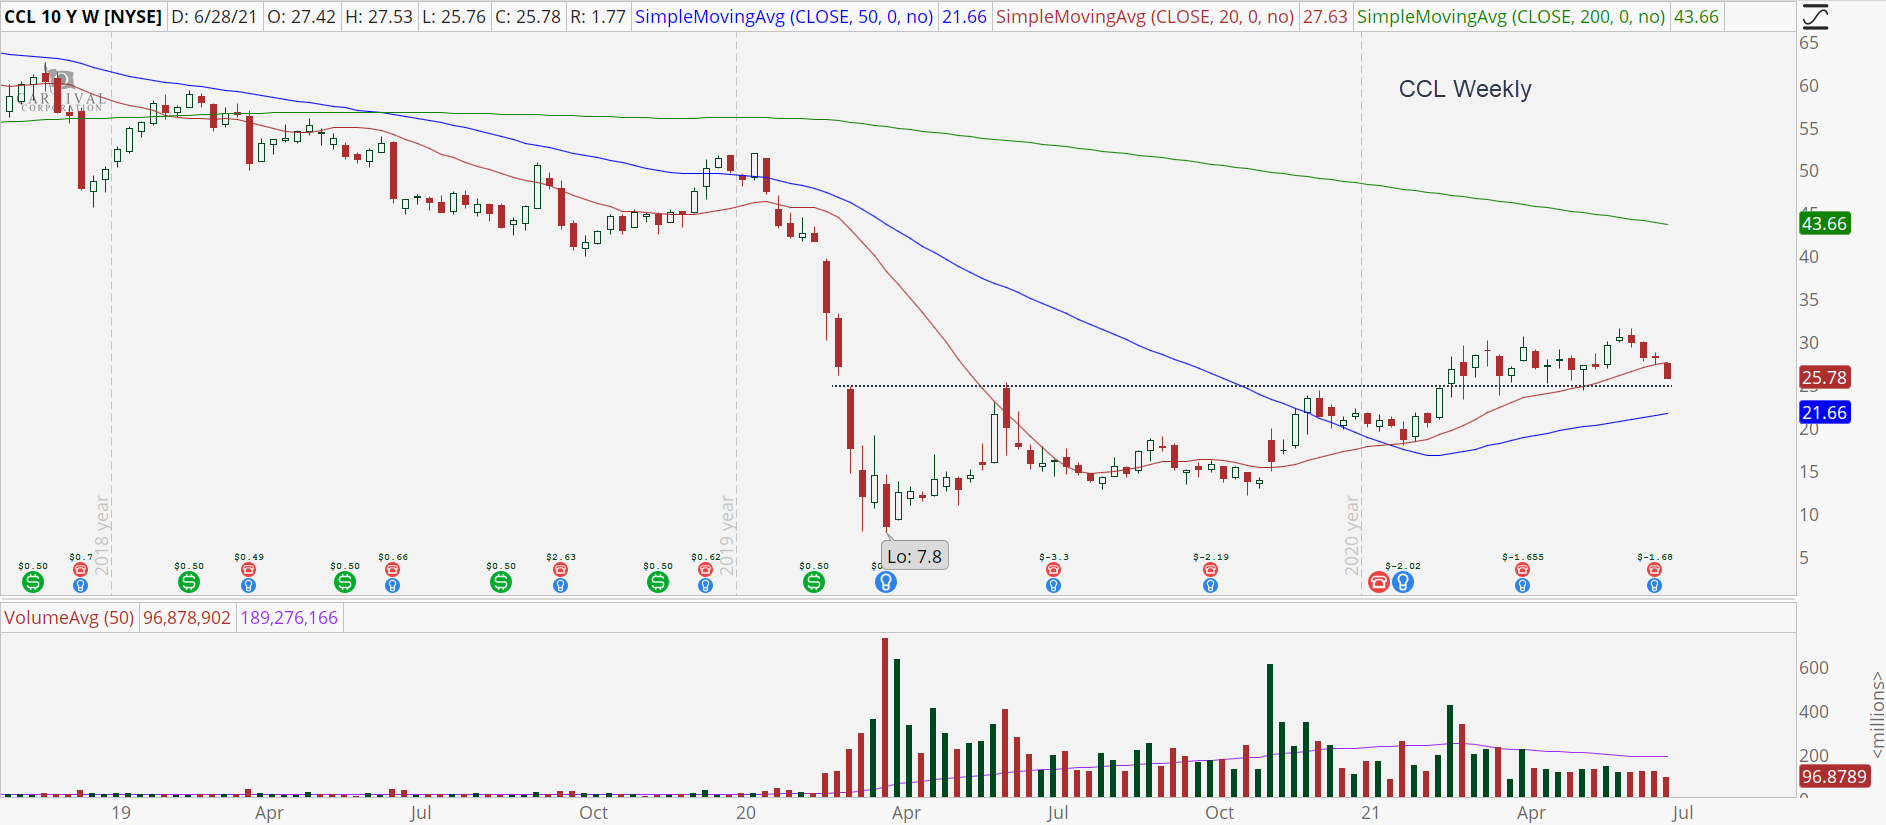 Carnival (CCL) weekly stock chart with $24 support